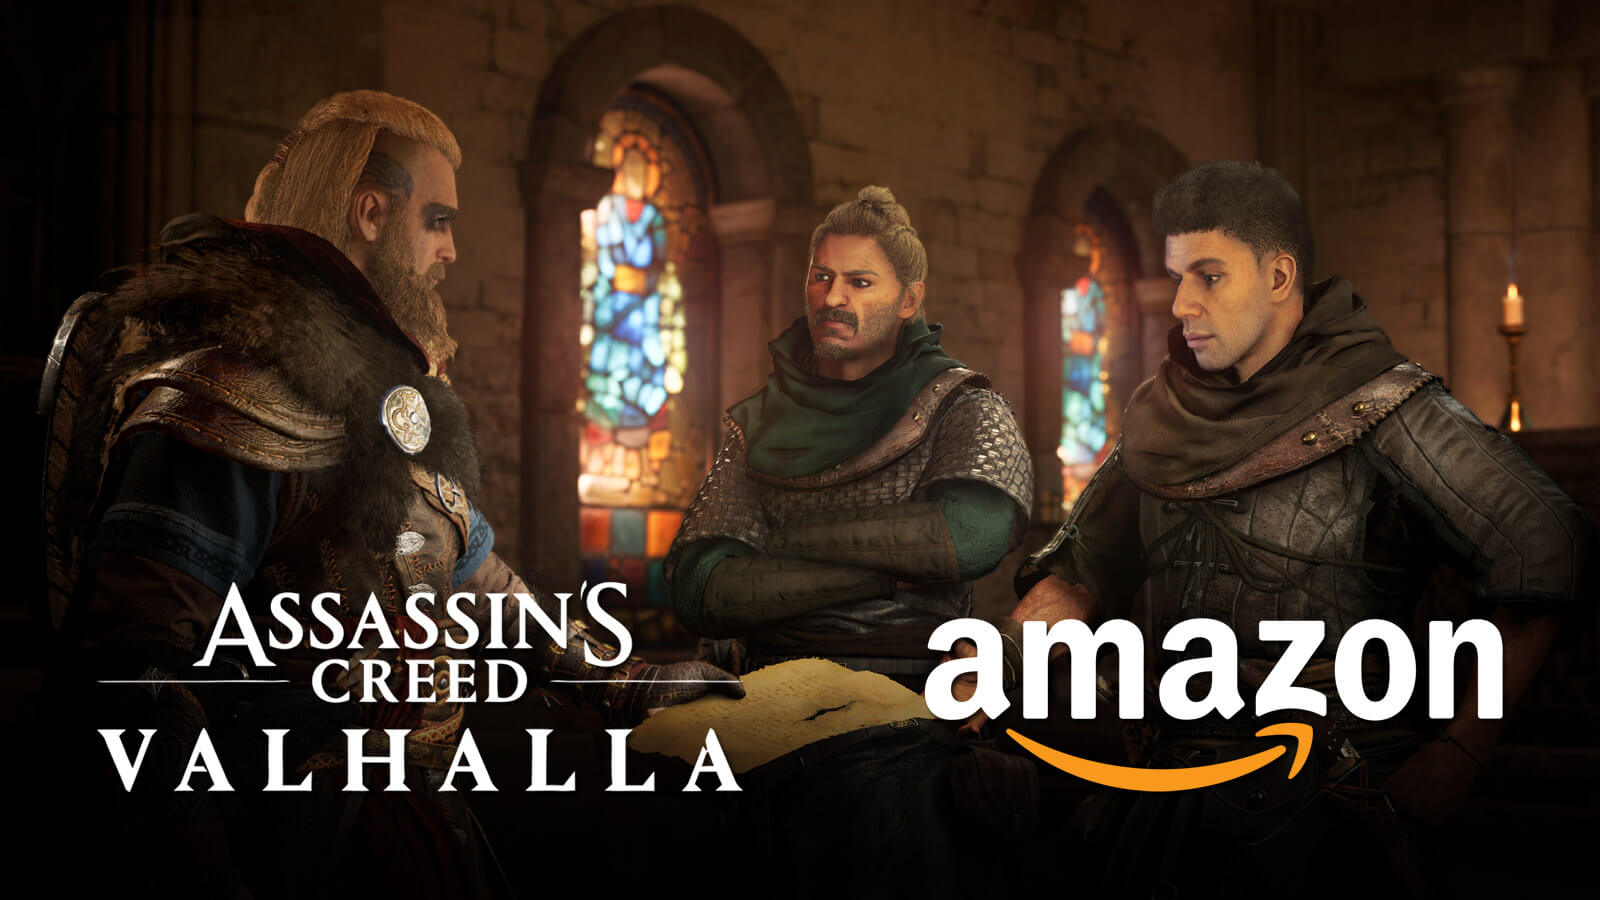 Assassin S Creed Valhalla Release Date Leaked On Amazon Gameslaught